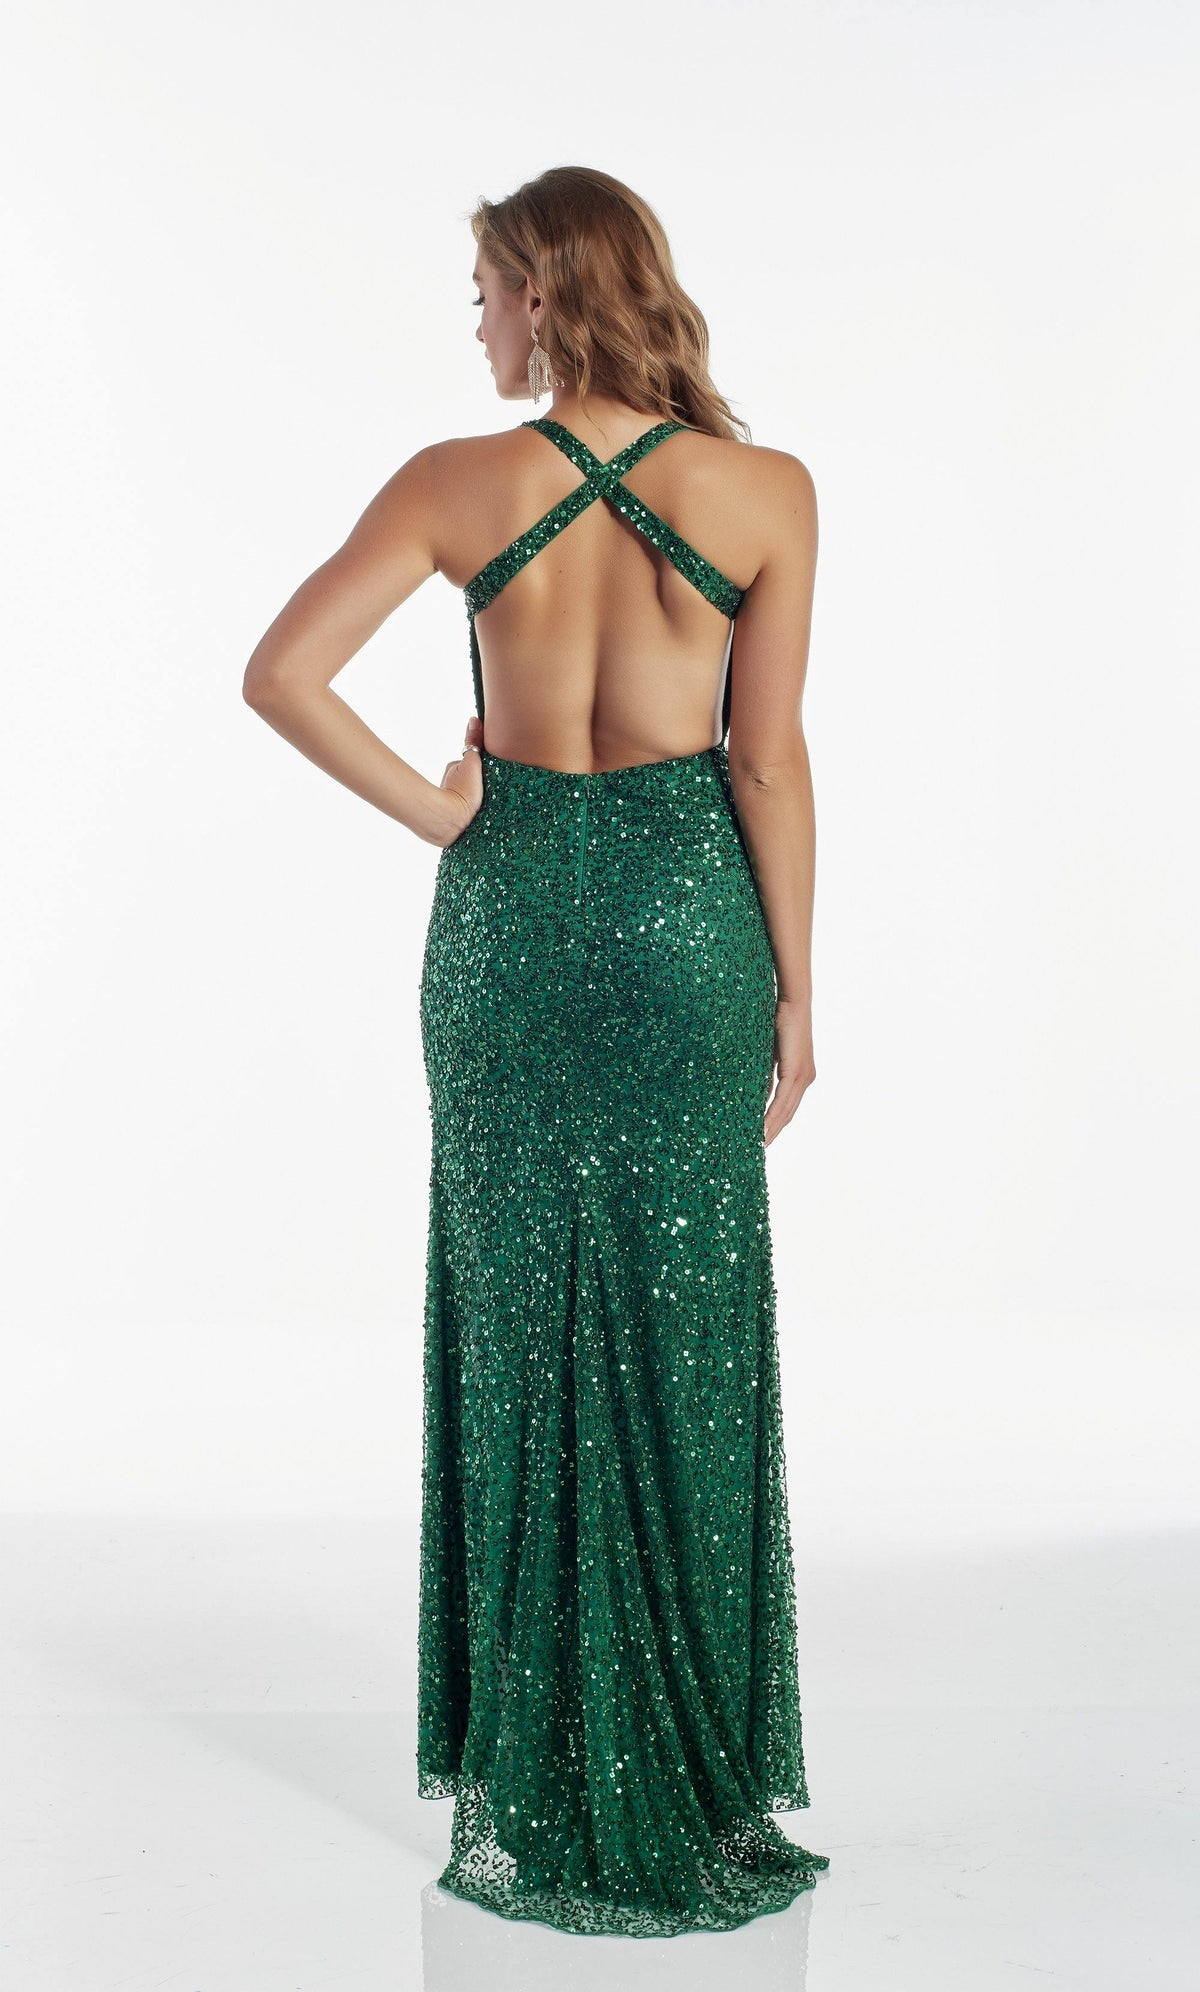 Emerald Green hand beaded prom dress with a strappy back and train